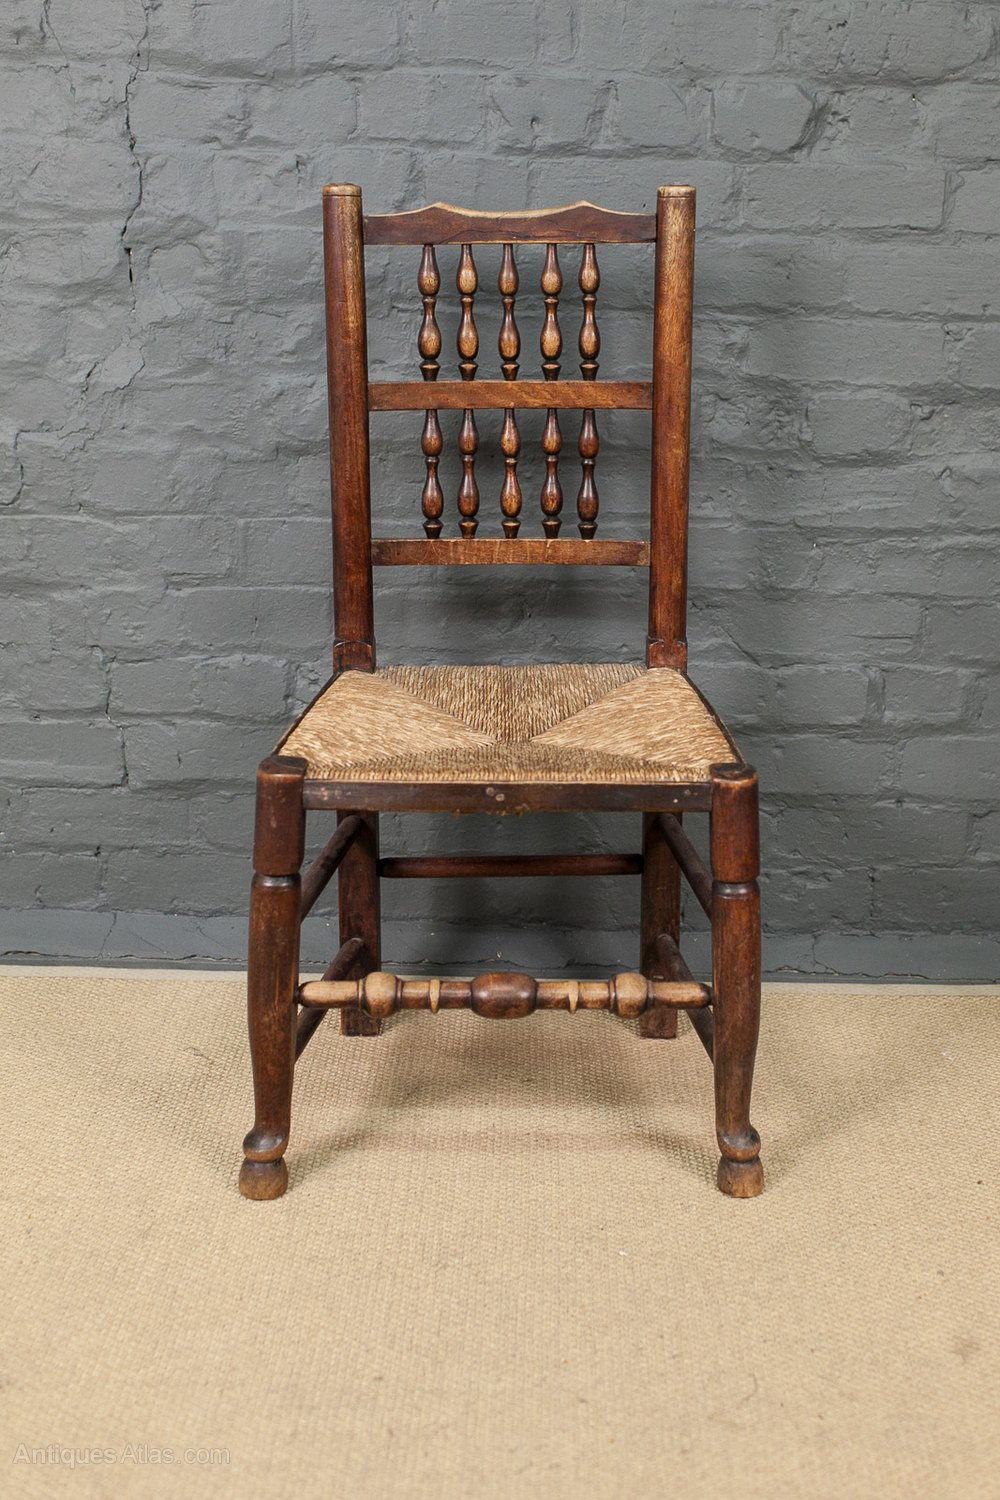 Set of 4 Rush Seat Lancashire Spindle Back Chairs Antique ... - Set Of 4 Rush Seat Lancashire Spindle Back Chairs - Antiques Atlas